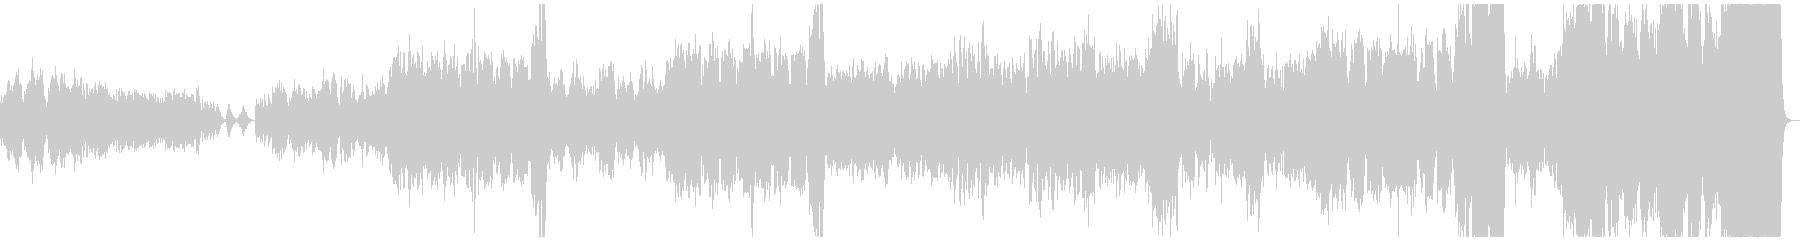 """""""Waltz of the Flowers"""" from Tchaikovsky's """"The Nutcracker"""" 's unreproduced waveform"""